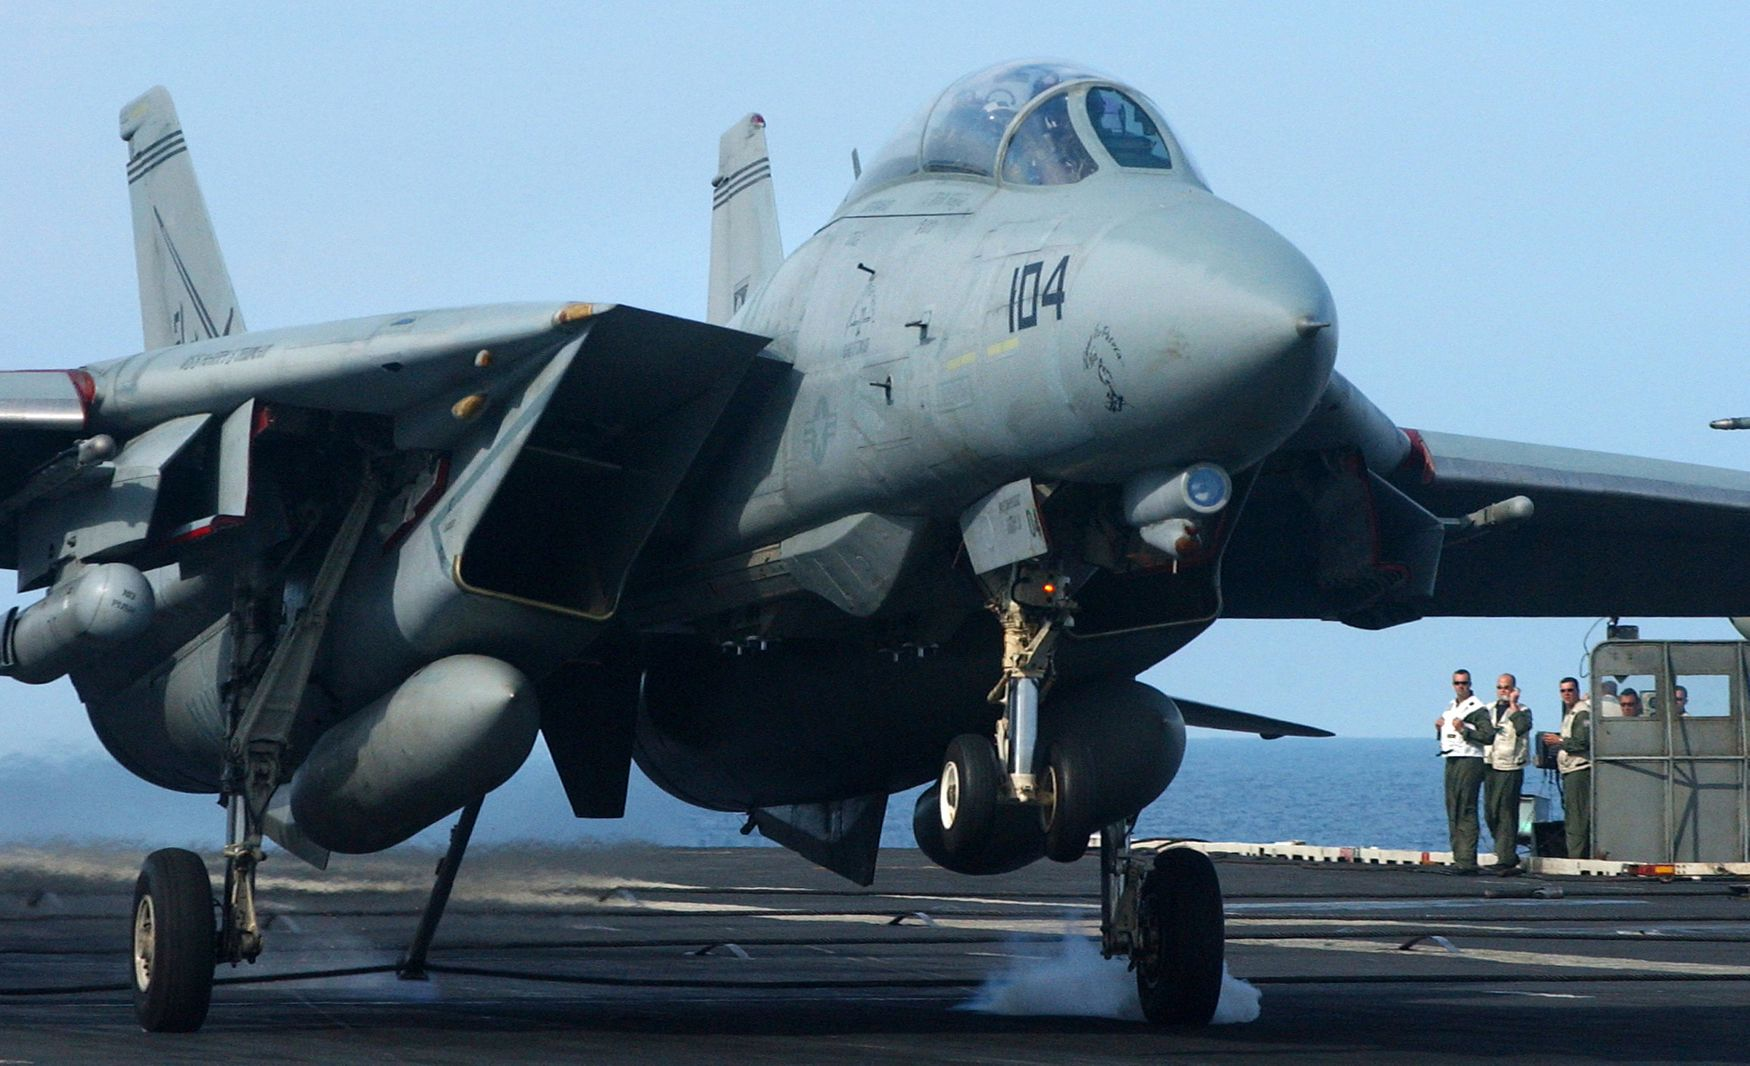 The F-14 Tomcat: The Carrier Jet the Navy Secretly Misses?